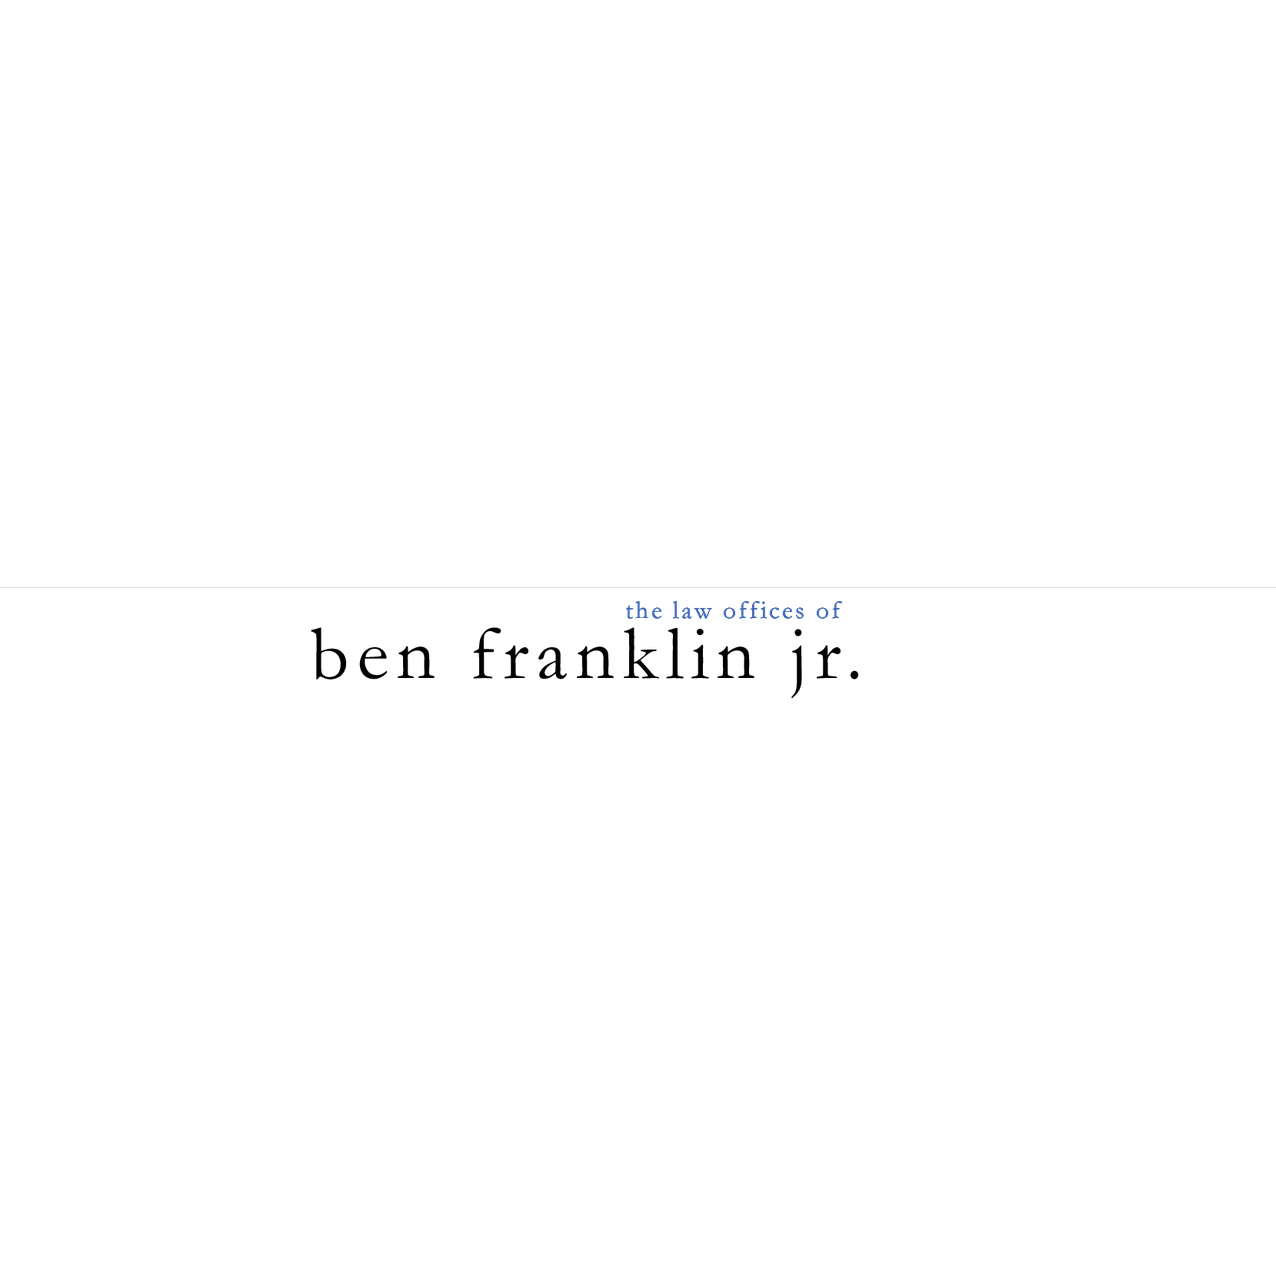 The Law Offices of Ben Franklin Jr.